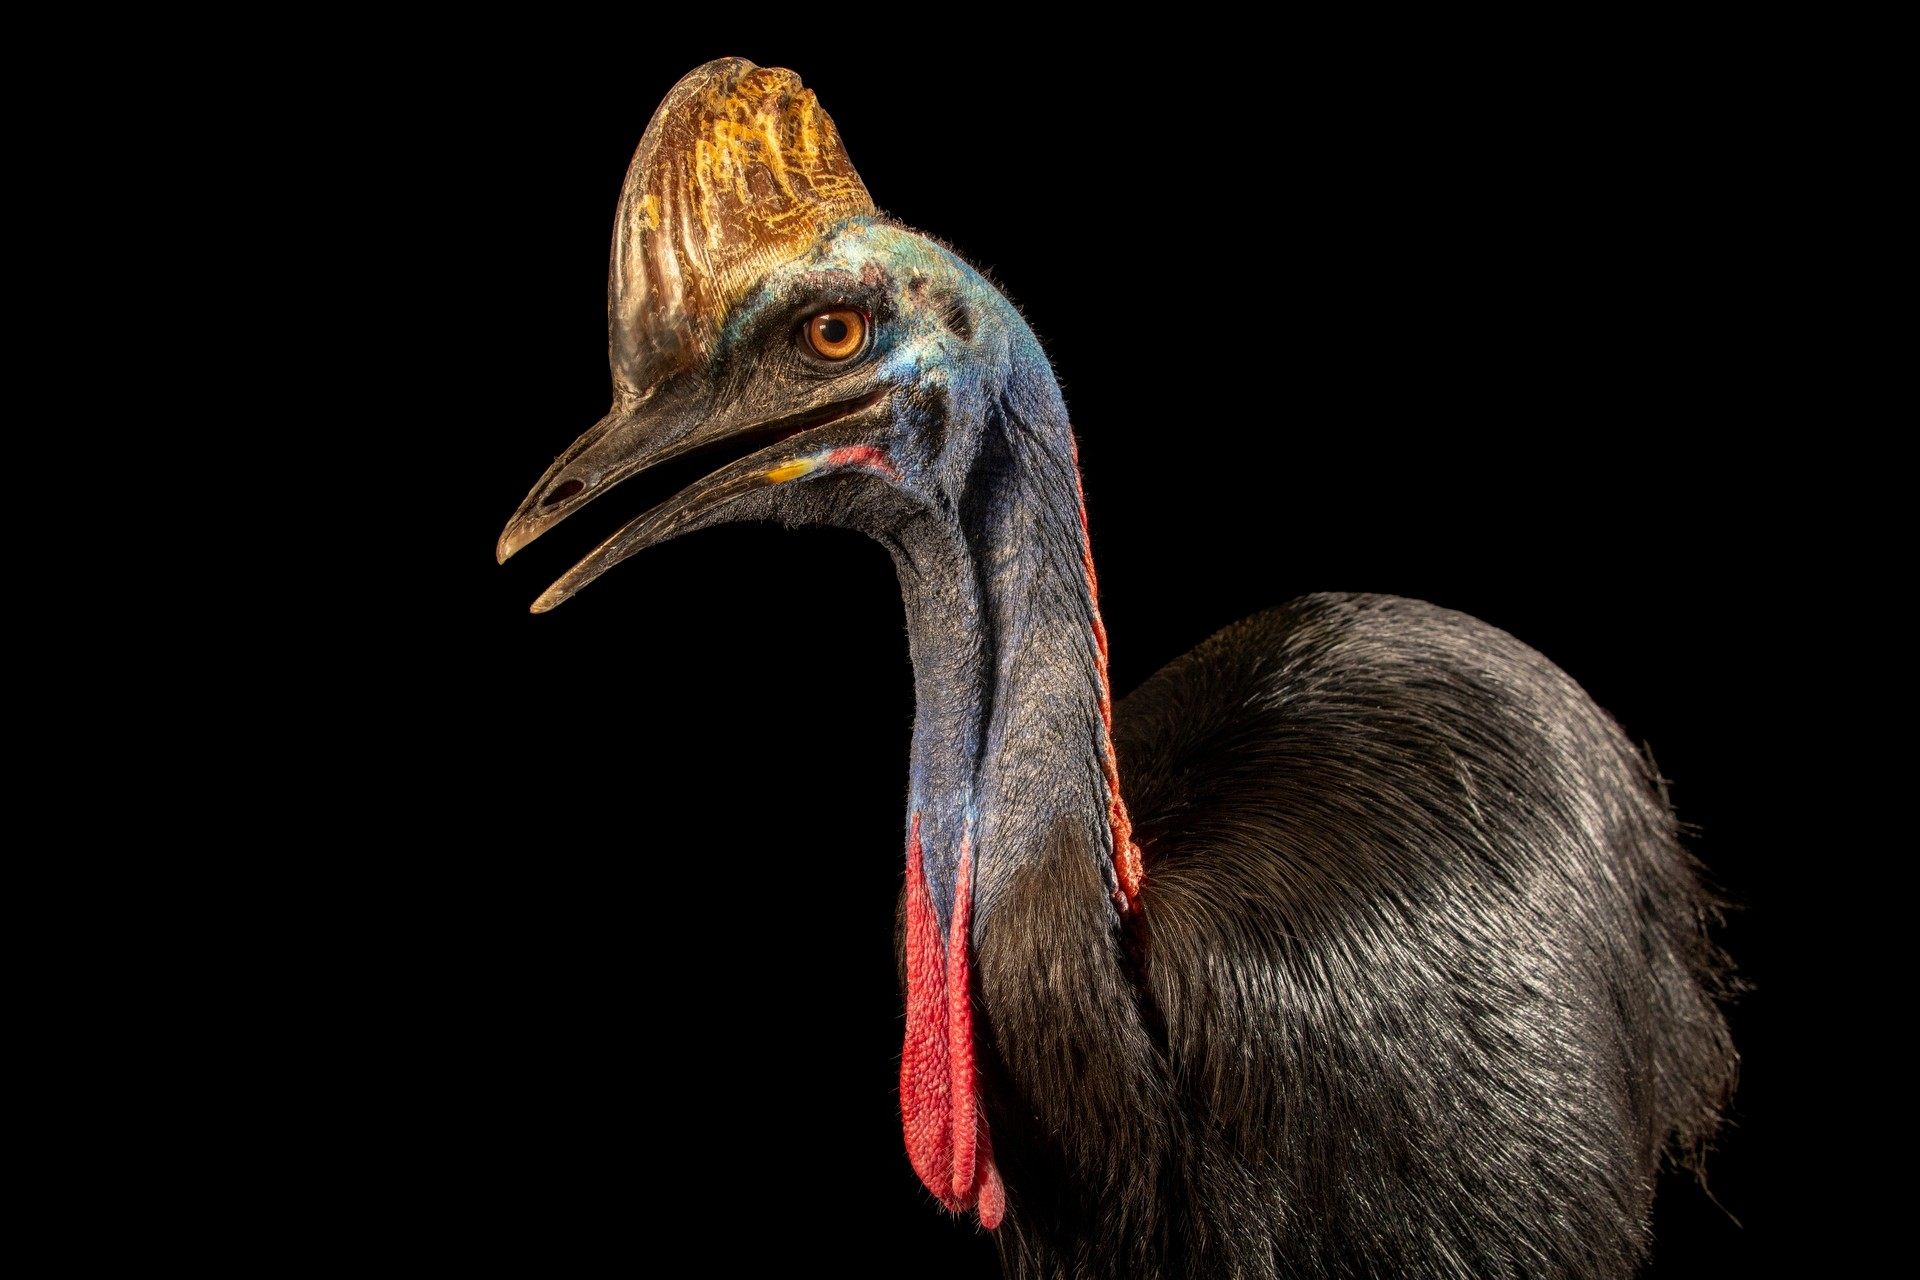 Photo: A double-wattled cassowary (Casuarius casuarius sclateri) at a private collection in Jakarta, Indonesia.